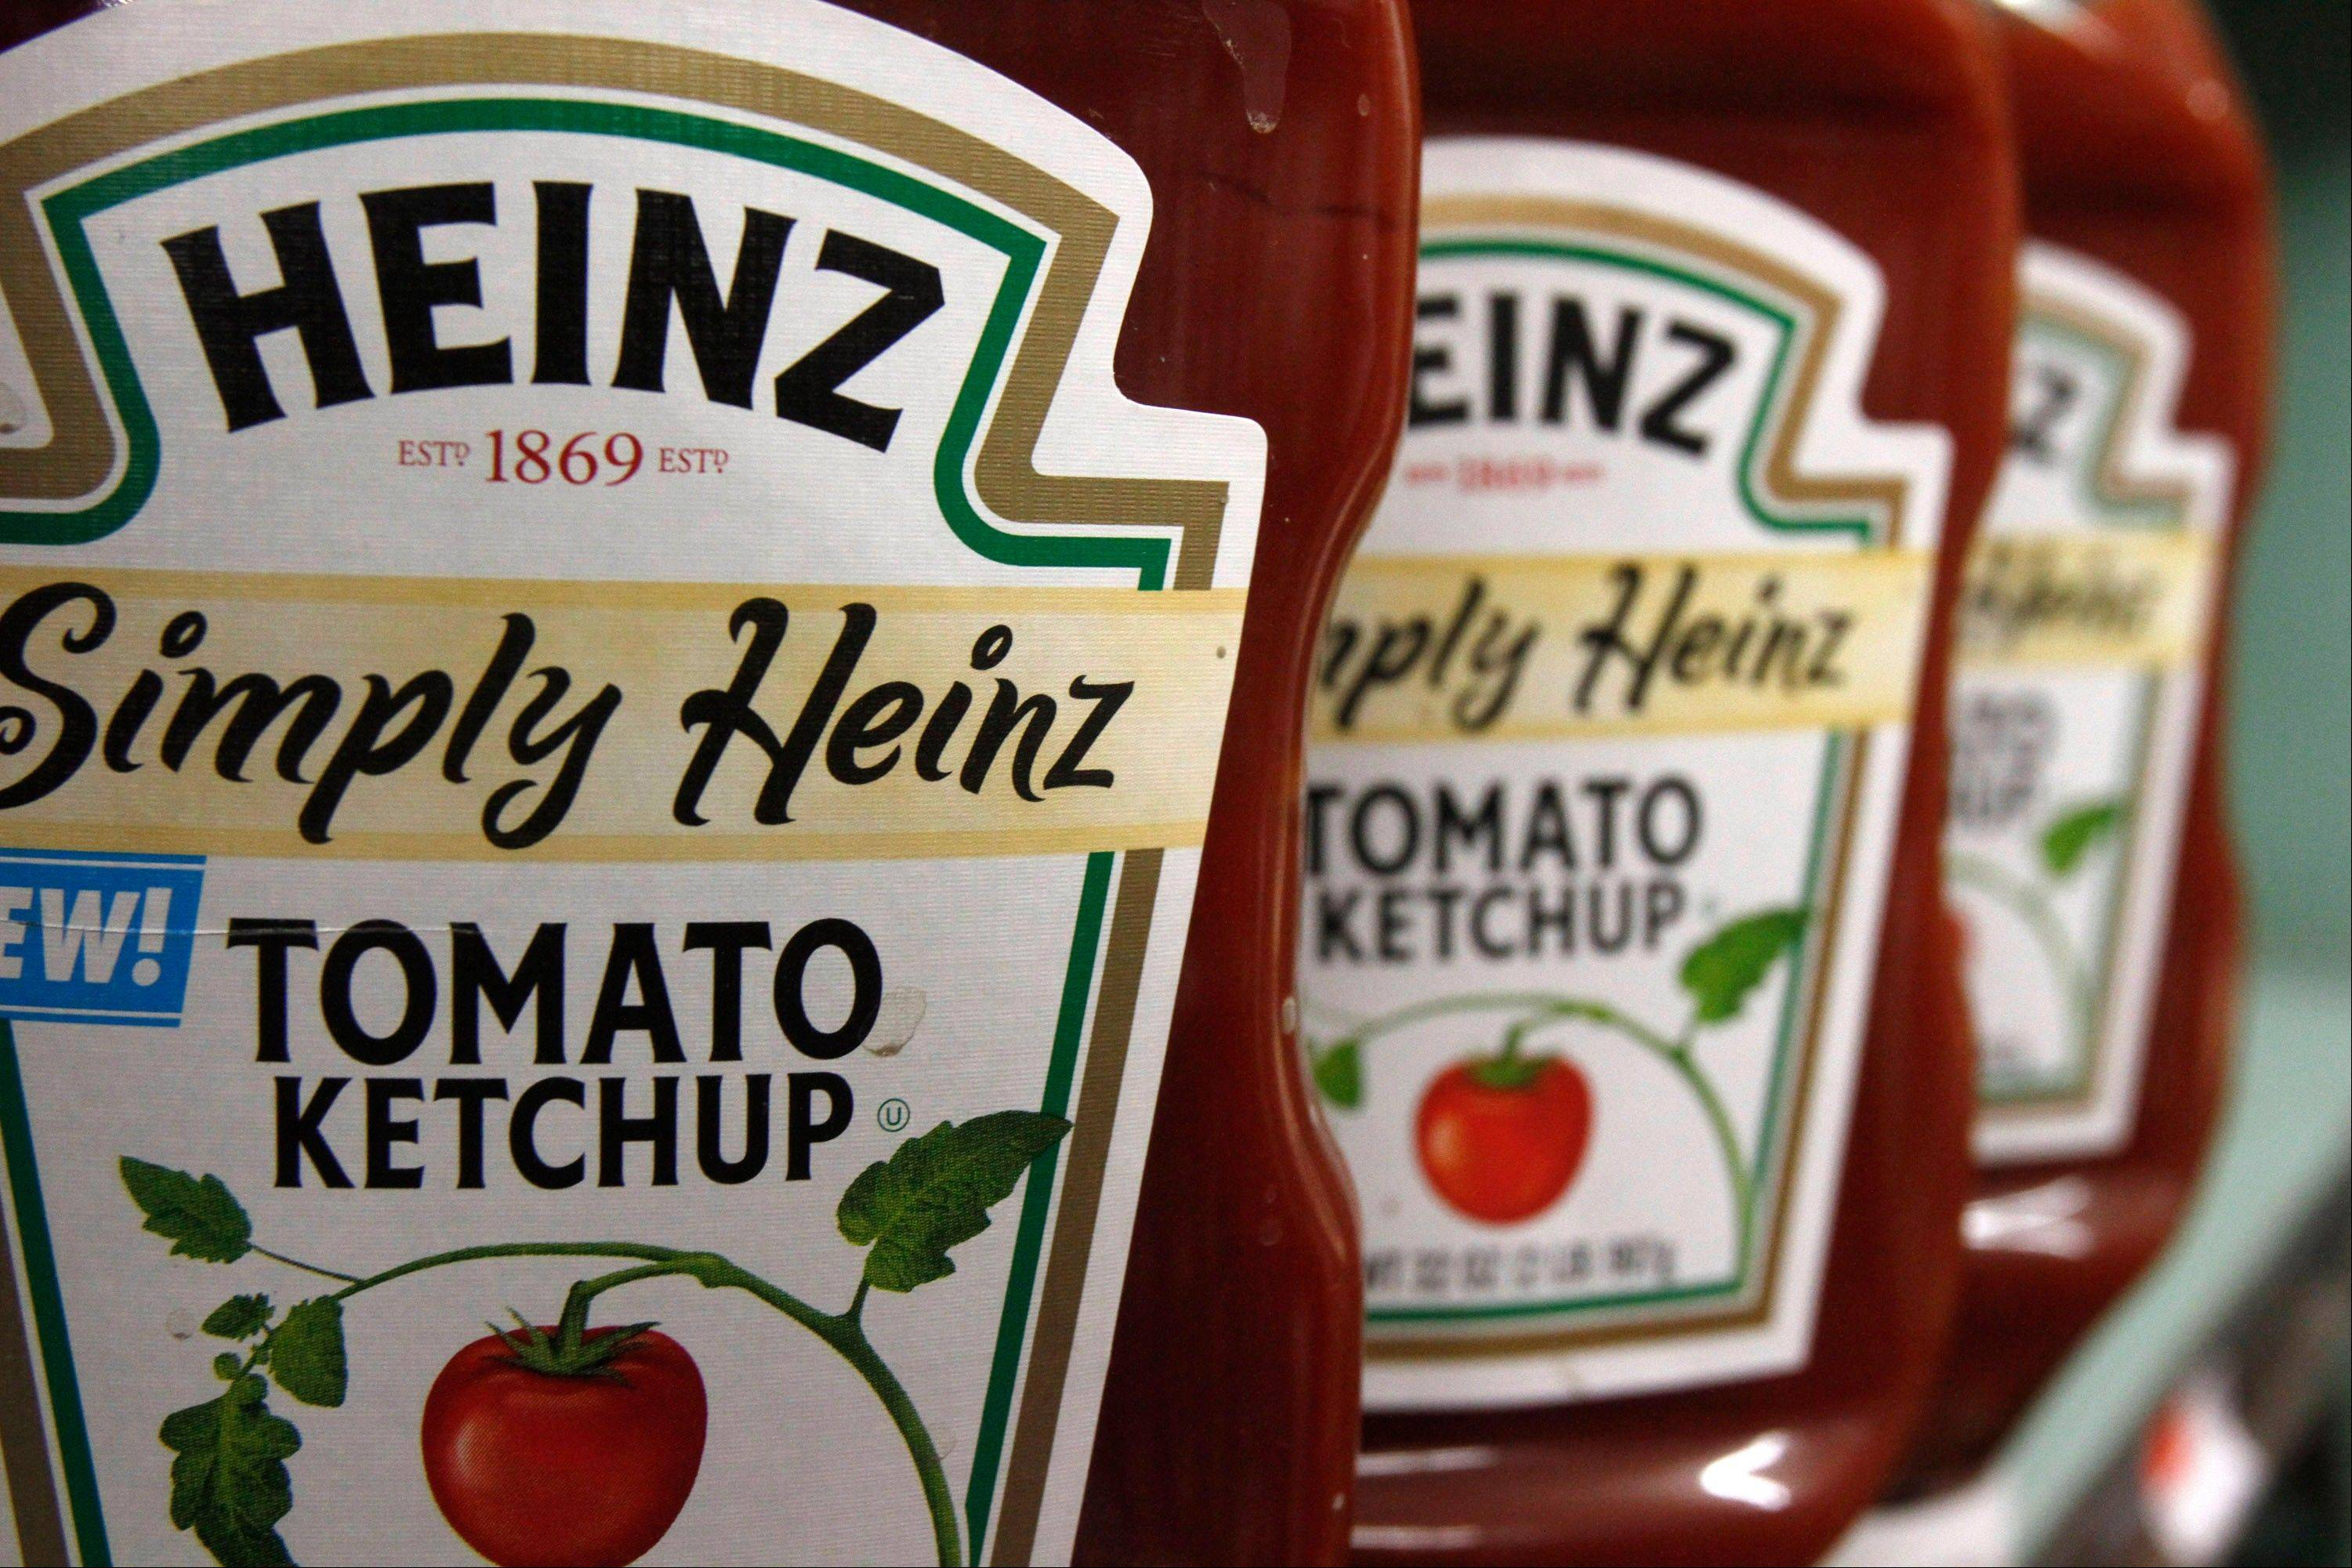 Billionaire investor Warren Buffett is dipping into the ketchup business as part of $23.3 billion deal to buy the Heinz ketchup company.